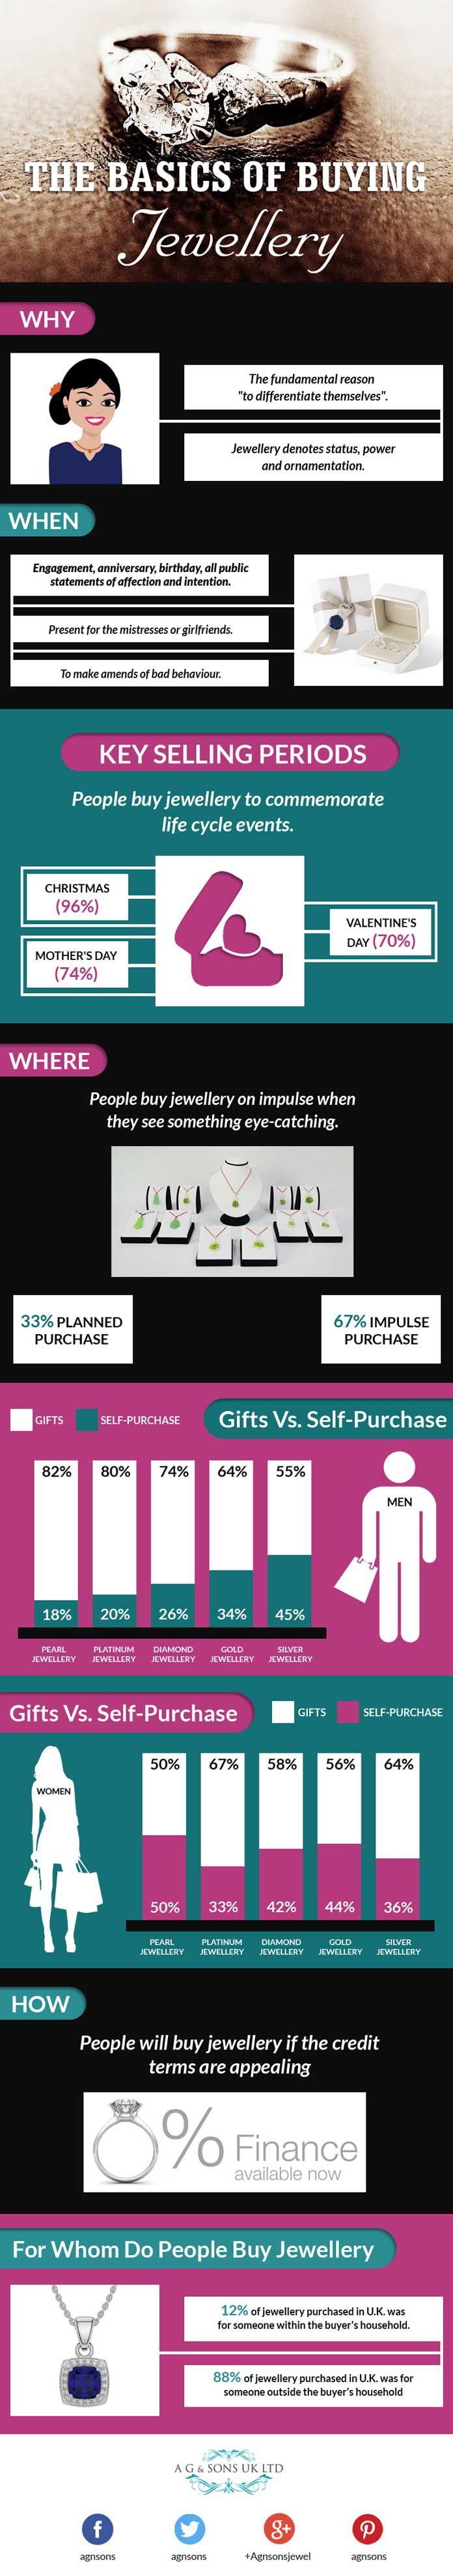 The-Basics-of-Buying-Jewellery